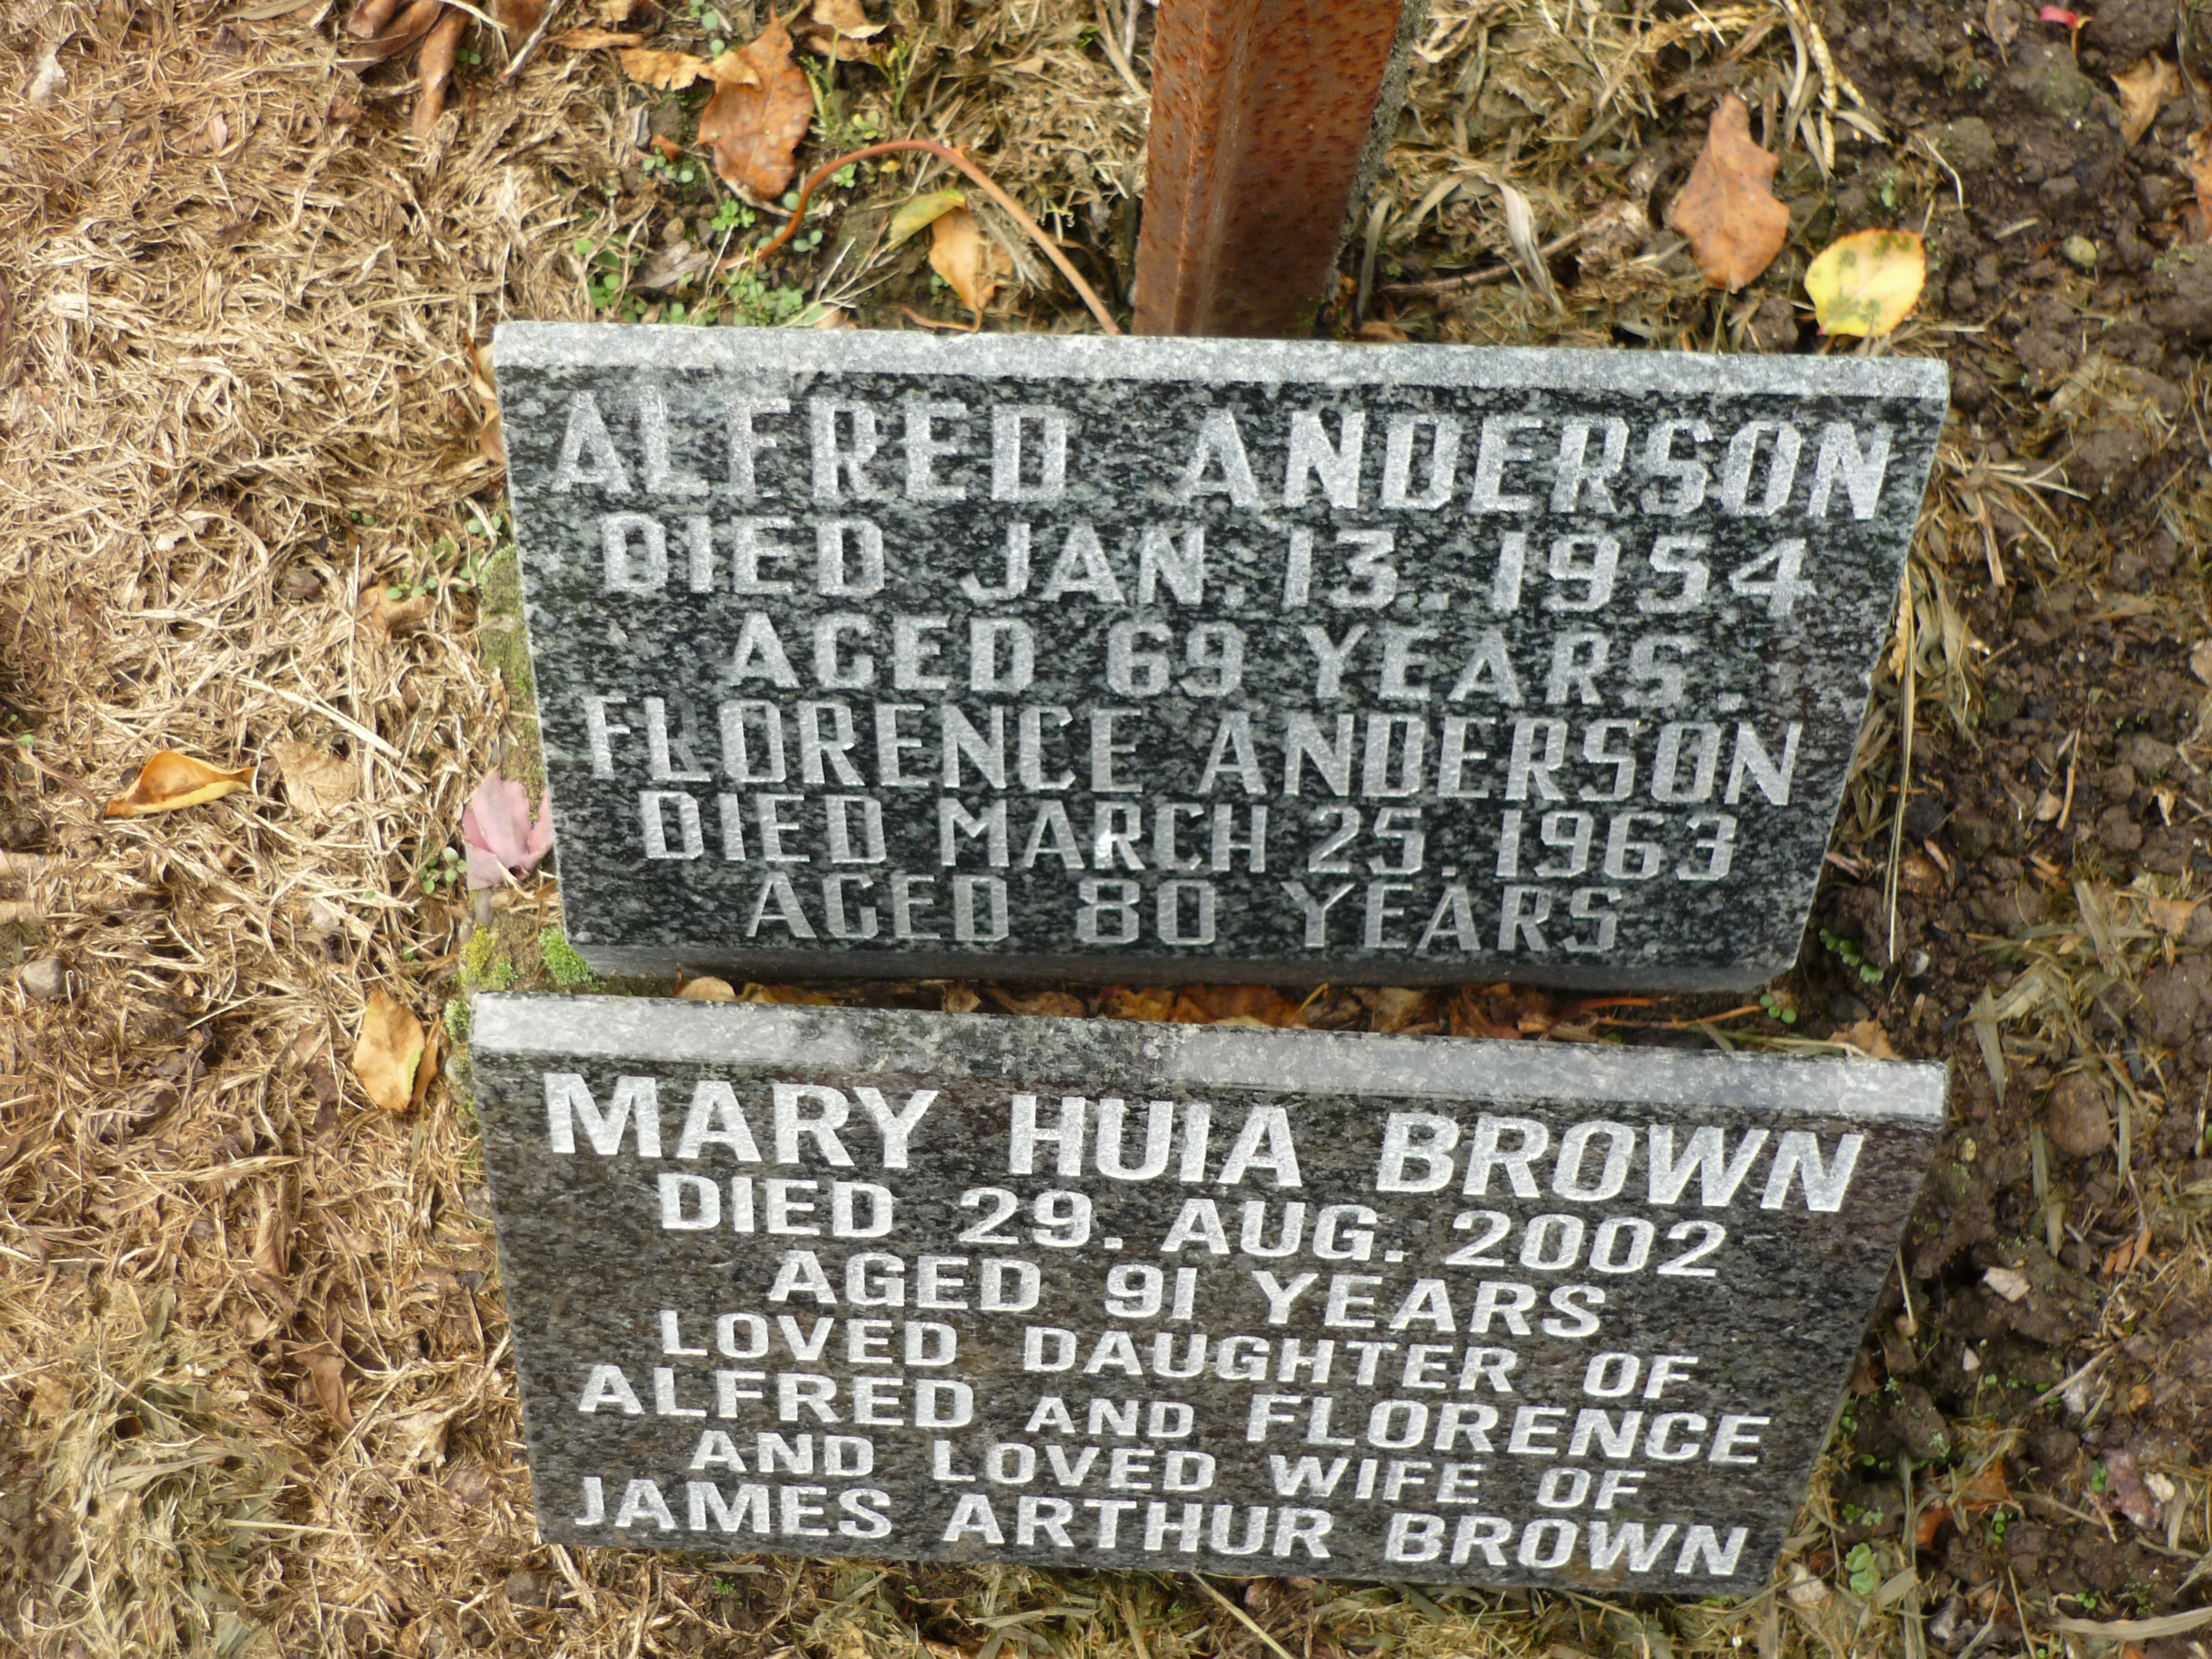 Memorials to Alfred and Florence Anderson with Mary Huia Brown (nee Anderson)